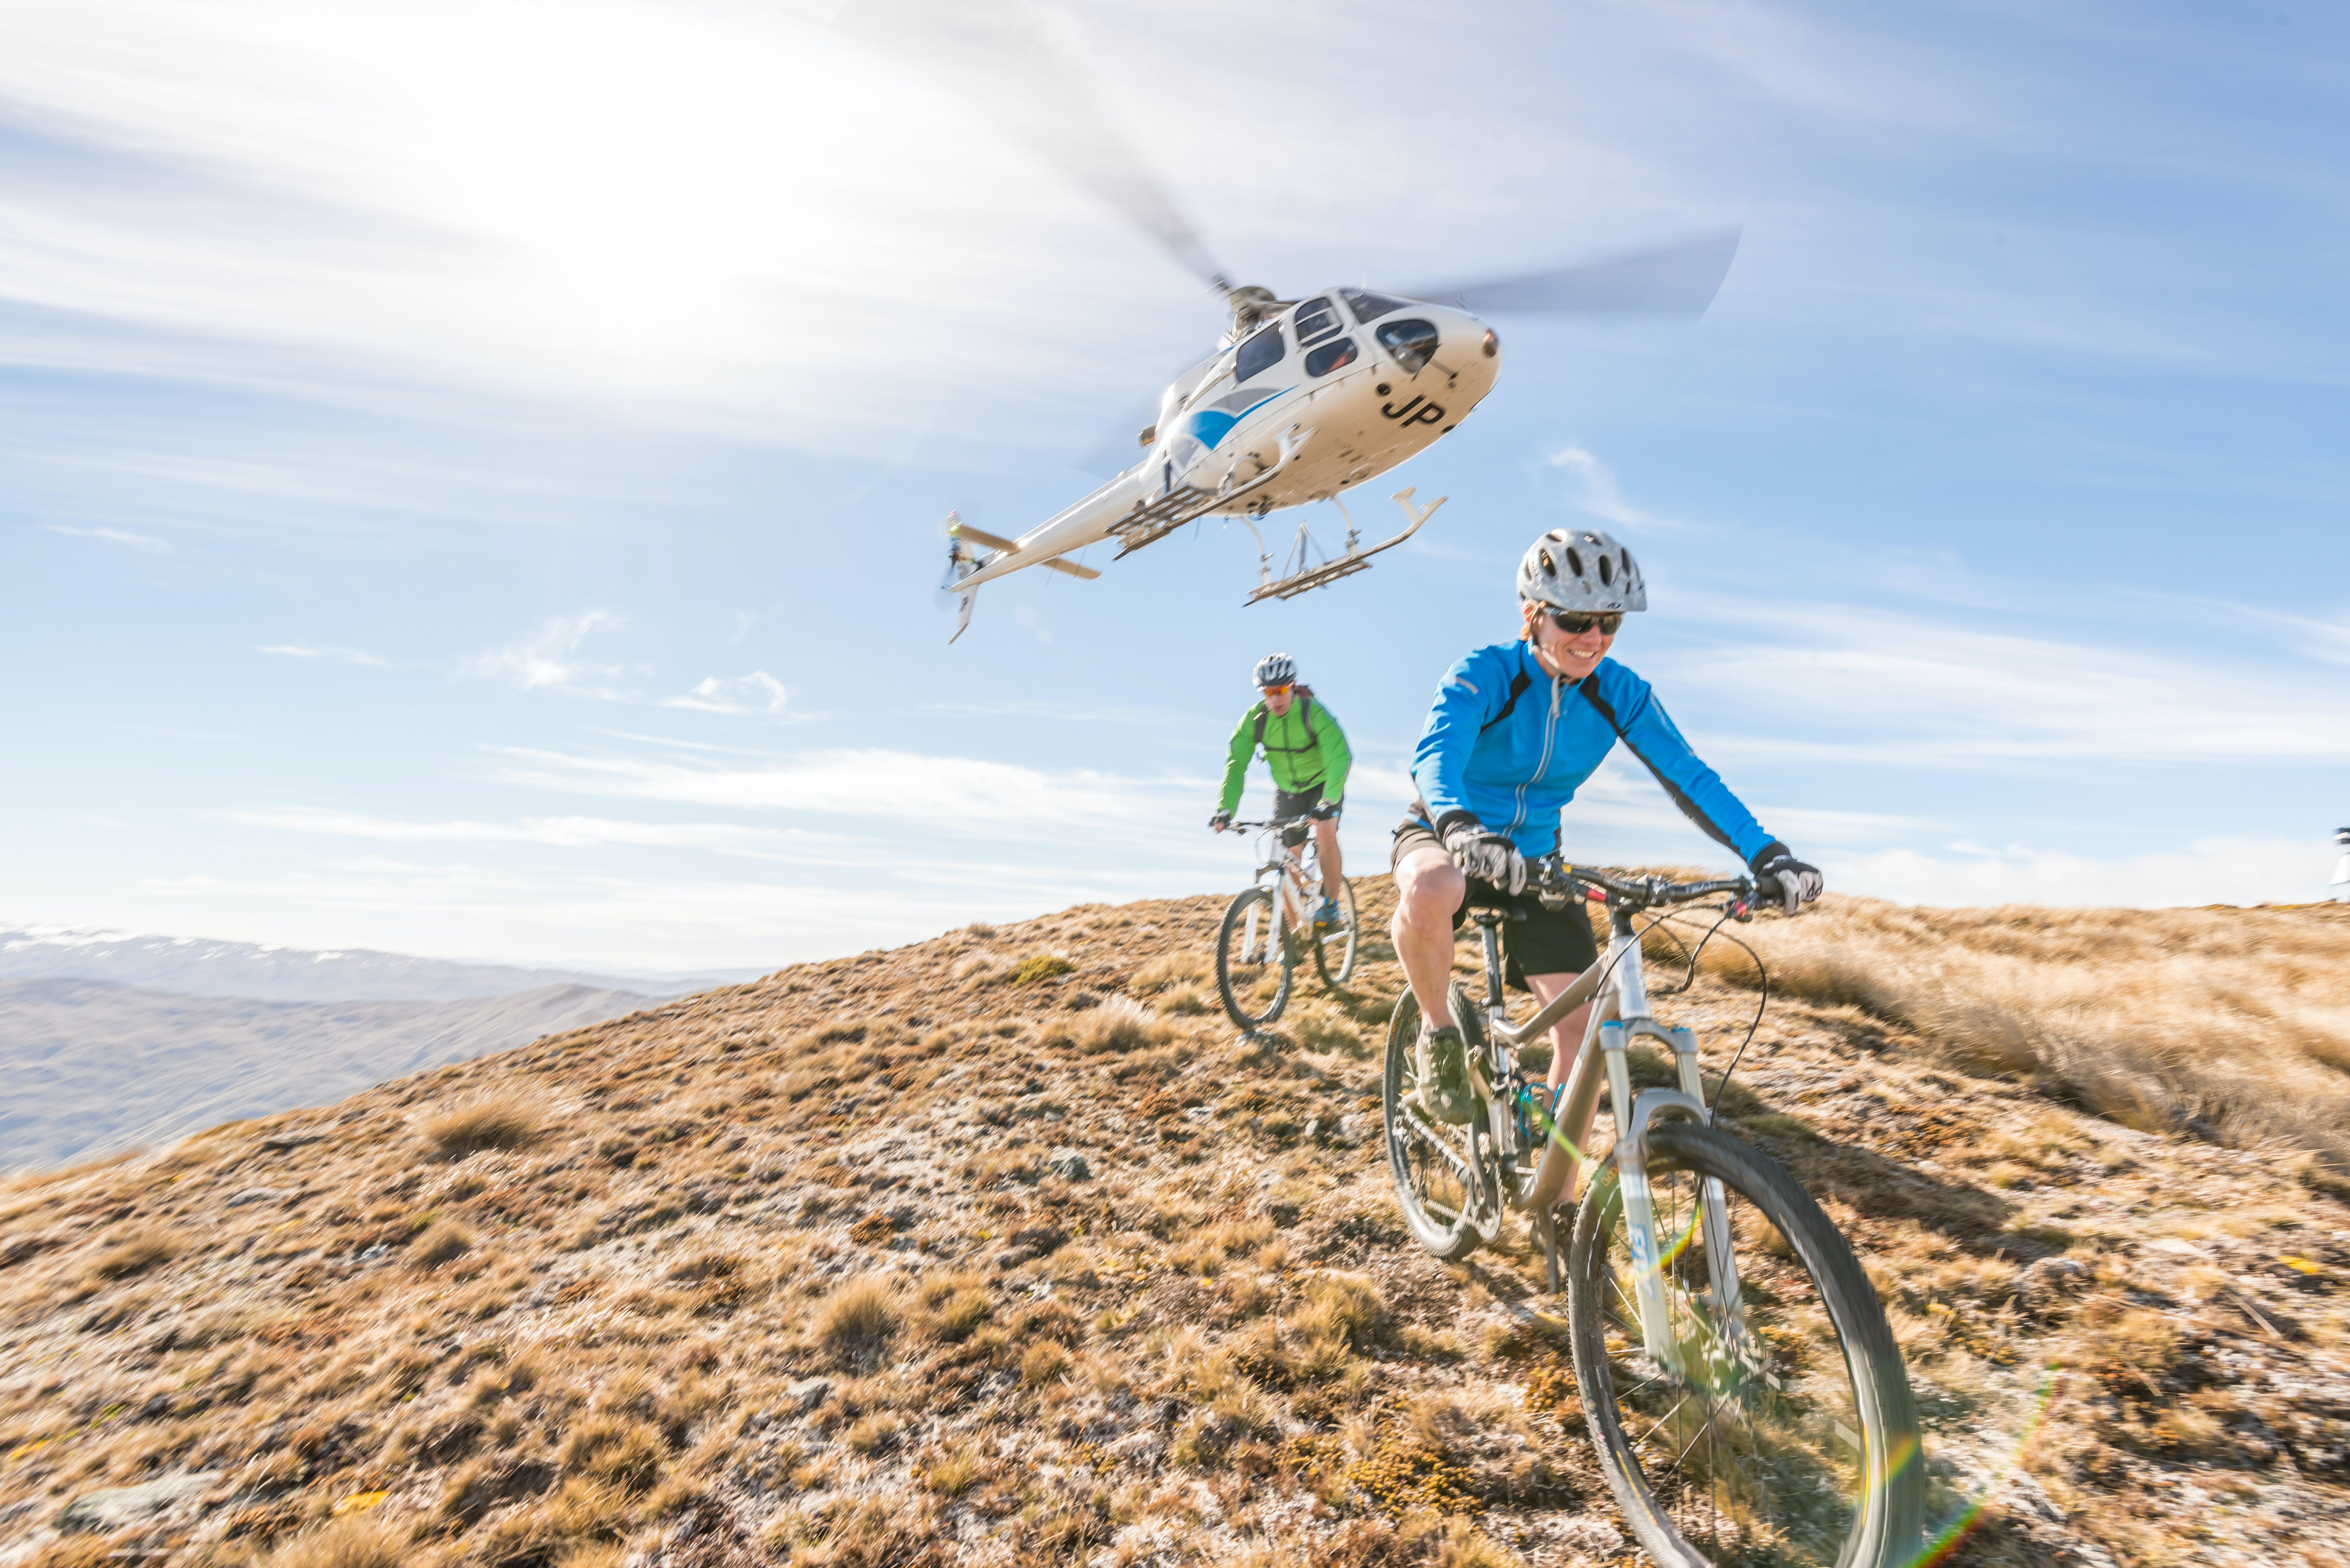 Epic Heli-biking Adventure Add-On